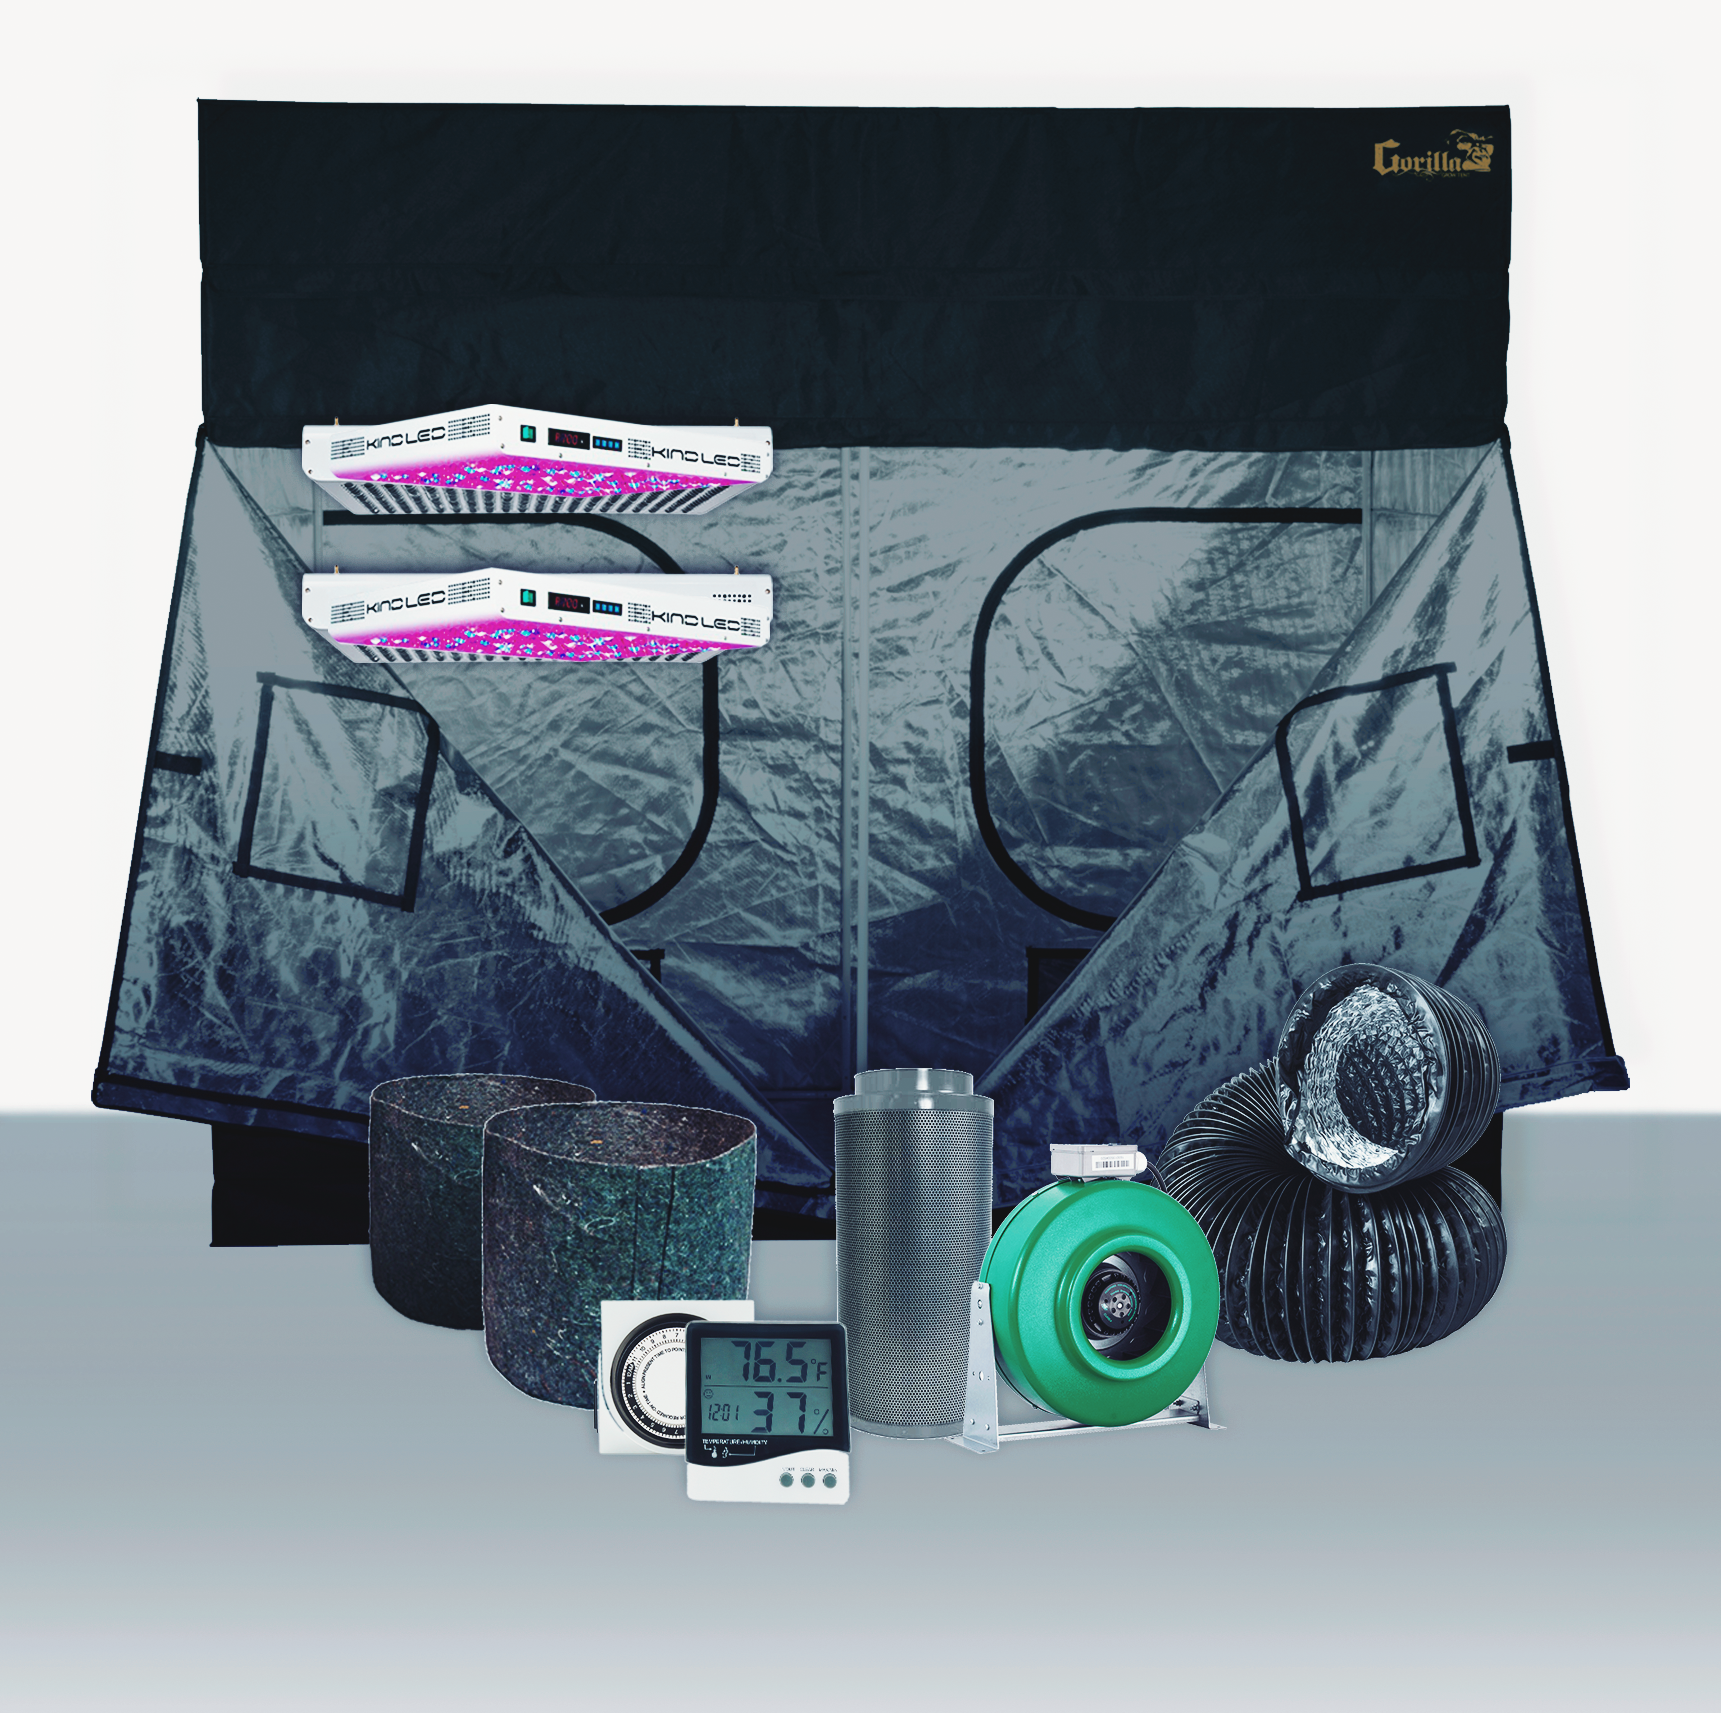 5' x 9' Grow Room 1000W KIND LED Coco Complete Grow Tent Package 5' x 9' Grow Room 1000W KIND LED Coco Complete Grow Tent Package This complete grow room tent package includes everything that you need to get started with discretely growing at home. Experienced growers designed every aspect of this tent package. They chose the parts of this package to create the best grow experience at an affordable price. Included in this Grow Tent Kit: Gorilla Grow Tent 5' x 9' Growers House Carbon Filter 8  x 24  750 CFM Active Air 8 inch In-Line Fan 720 CFM 8 inch x 25' Black Lightproof Ducting w/Clamps Silver Flex Duct Tape -- 5 Yards 4 x Hurricane 6 inch Clip Fan - Classic Series 2 x Kind LED K5 XL1000 Grow Light 4 x Grow Crew 1/8 inch Ratchet Light Hanger (Pair) 2 x Titan Controls Apollo 8 -- 24 Hour Dual Timer Grower's Edge Large Display Thermometer & Hygrometer 30 x Growers House Essentials Round Fabric Charcoal Pot - 3 Gallon 30 x Gro Pro Heavy Duty Black Saucer - 12 in Grower's Edge Soft Mesh Trellis Netting 5 ft x 15 ft w/ 6 in Squares General Hydroponics pH Control Kit Gorilla Grow Tent 5' x 9' Gorilla Grow Tents are professionally designed grow tents that are ideal for experts and perfect for beginners. The expert configuration positions ducting ports where they should be. Large EZ View windows offer easy grow snapshots without compromising your environment. The doorways offer 360 degree convenient access. The larger layouts provide frustration free maneuvering. Thick material and large 10  double cinching ducting ports make maintaining an ideal growing space a snap. Grow easy on yourself. Grow Gorilla. Gorilla Grow Tents feature a patent pending adjustable height extension kit that gives you the ability to increase your growing height from 7' to 8' or even 9' tall. Your plants can grow up to 50% larger. Never again will you have to worry about your plants outgrowing your lights and room. Now you can experience crouch free maneuvering without banging your head on low ha